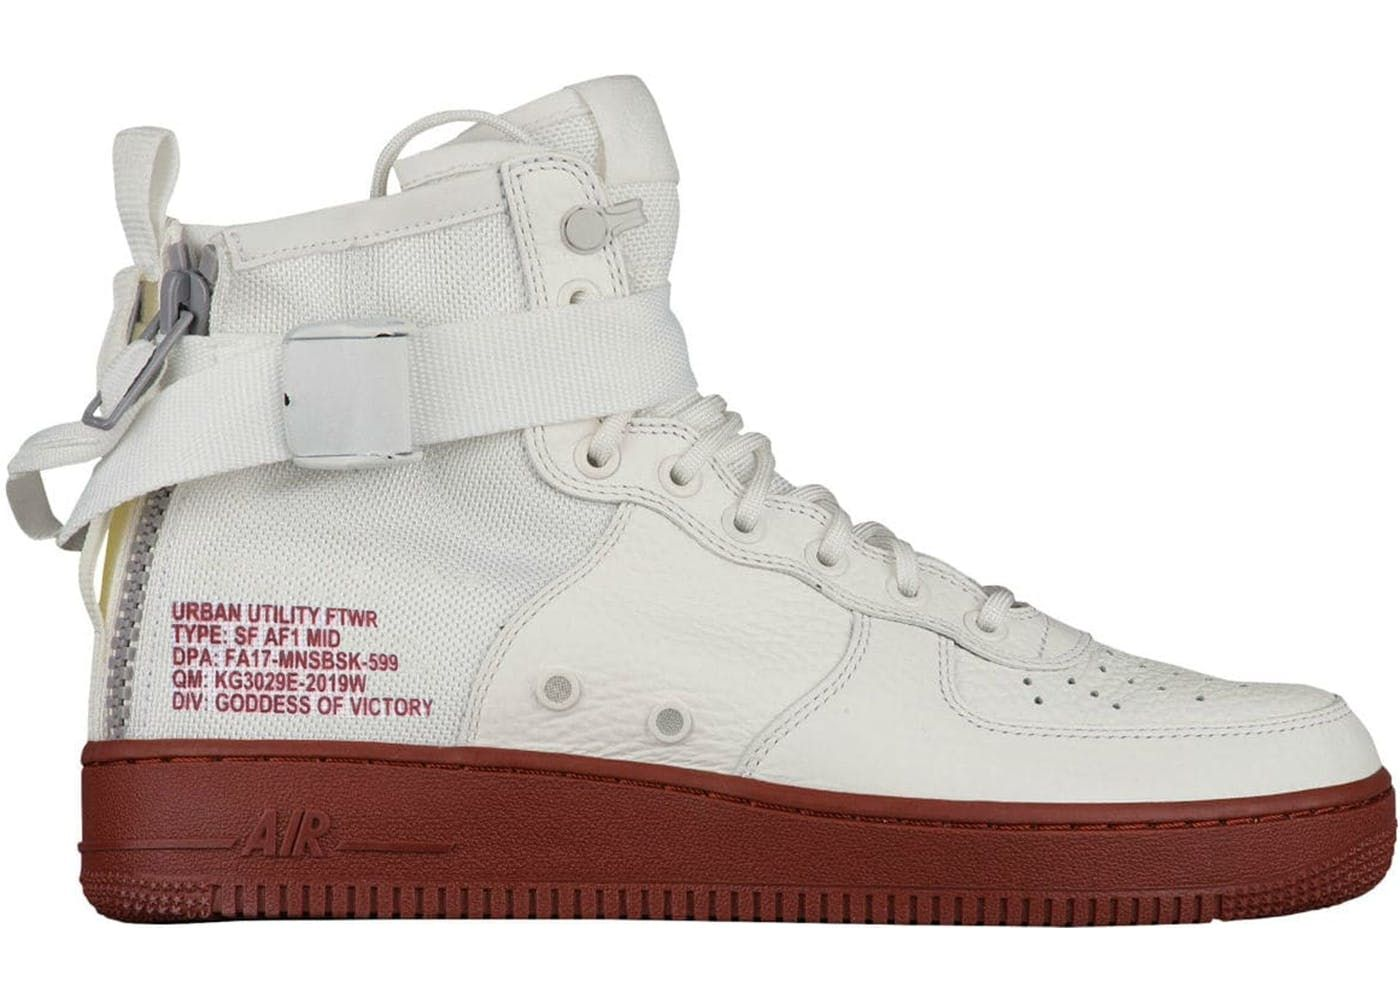 b8befcb6 Check out the SF Air Force 1 Mid Ivory Mars Stone available on StockX